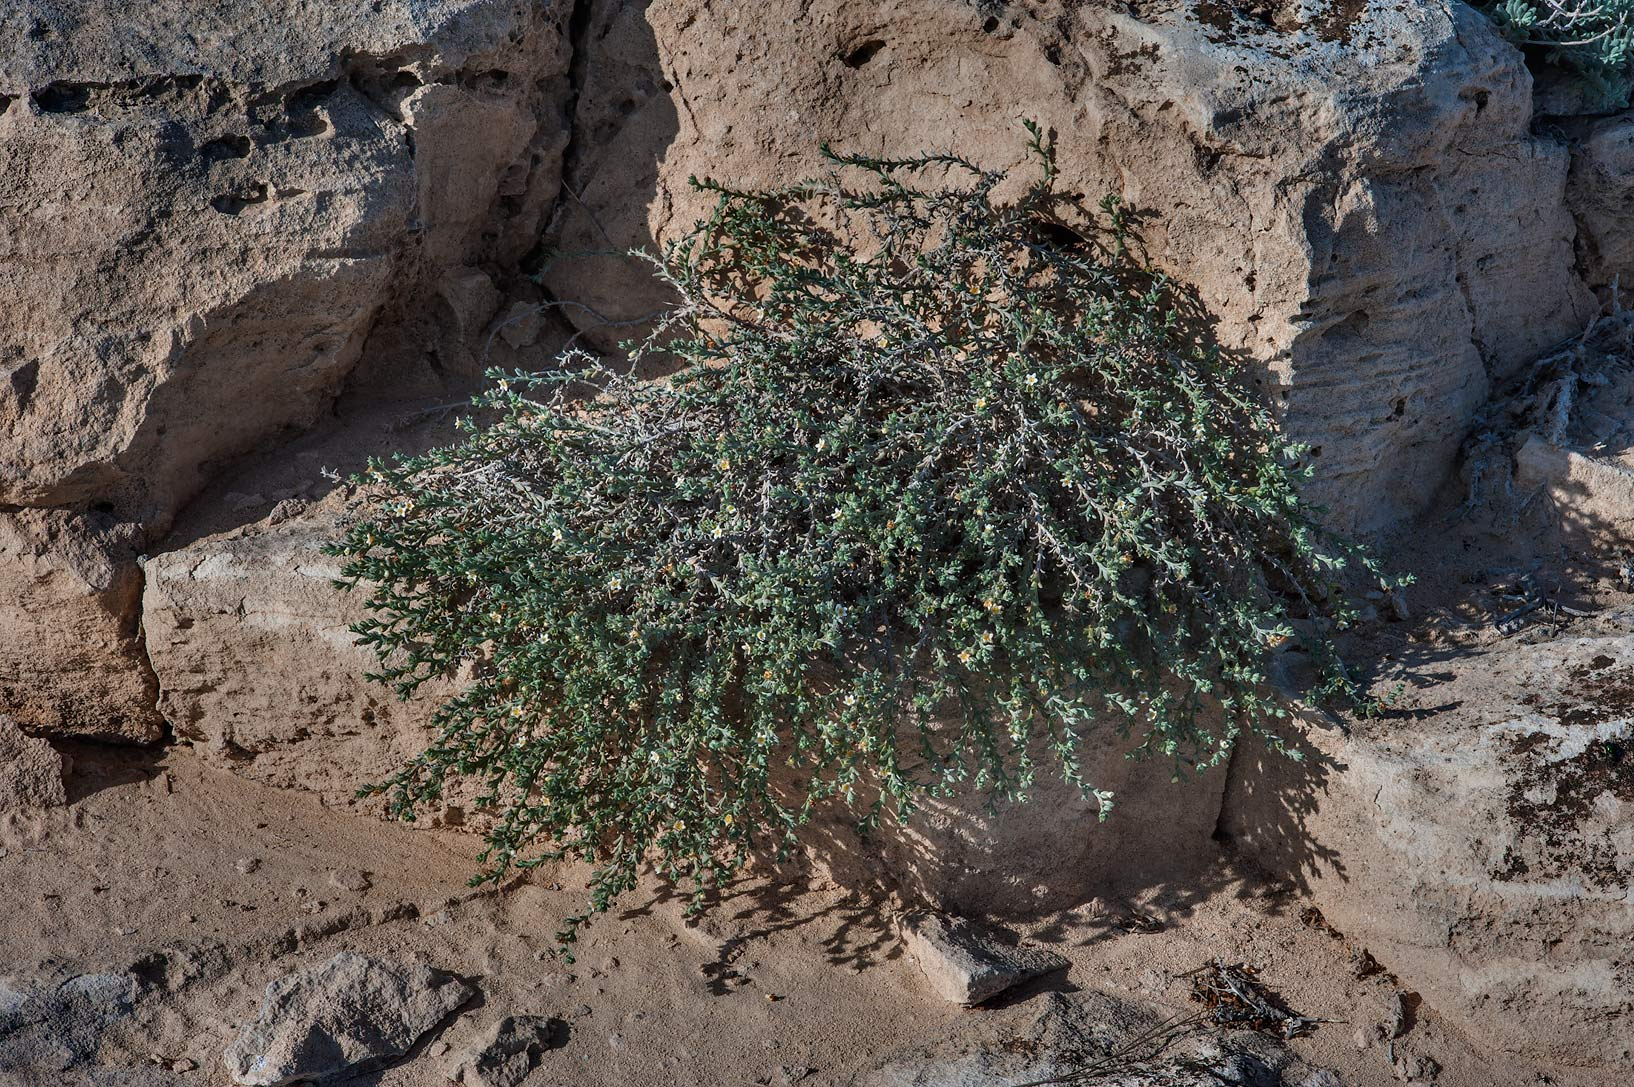 Plant of stoneseed (Echiochilon jugatum) on rocky ridge of Jebel Fuwairit. Northern Qatar